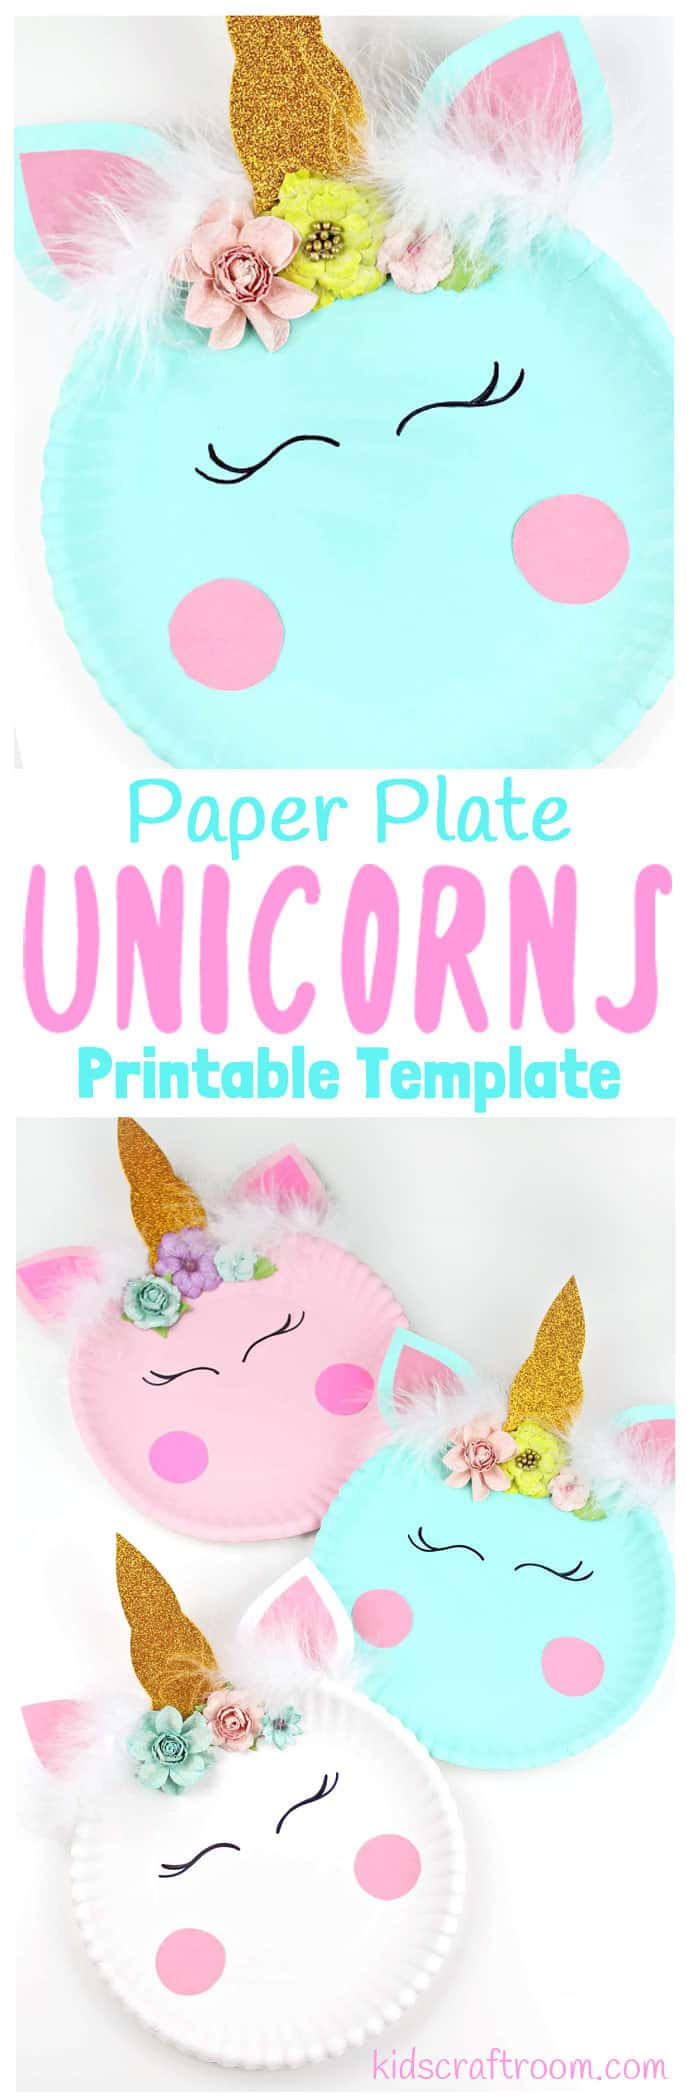 Have your kids been hit with the unicorn frenzy? We just love them! Bring some magic to your craft sessions with this super simple Paper Plate Unicorn Craft. These unicorns look so pretty your big kids will love them but they're simple enough for your preschoolers and toddlers to enjoy too. We've even got a free printable template to make it even easier! #unicorn #unicorns #unicorncrafts #paperplatecrafts #kidscrafts #craftsforkids #kidscraftroom #printable #crafts